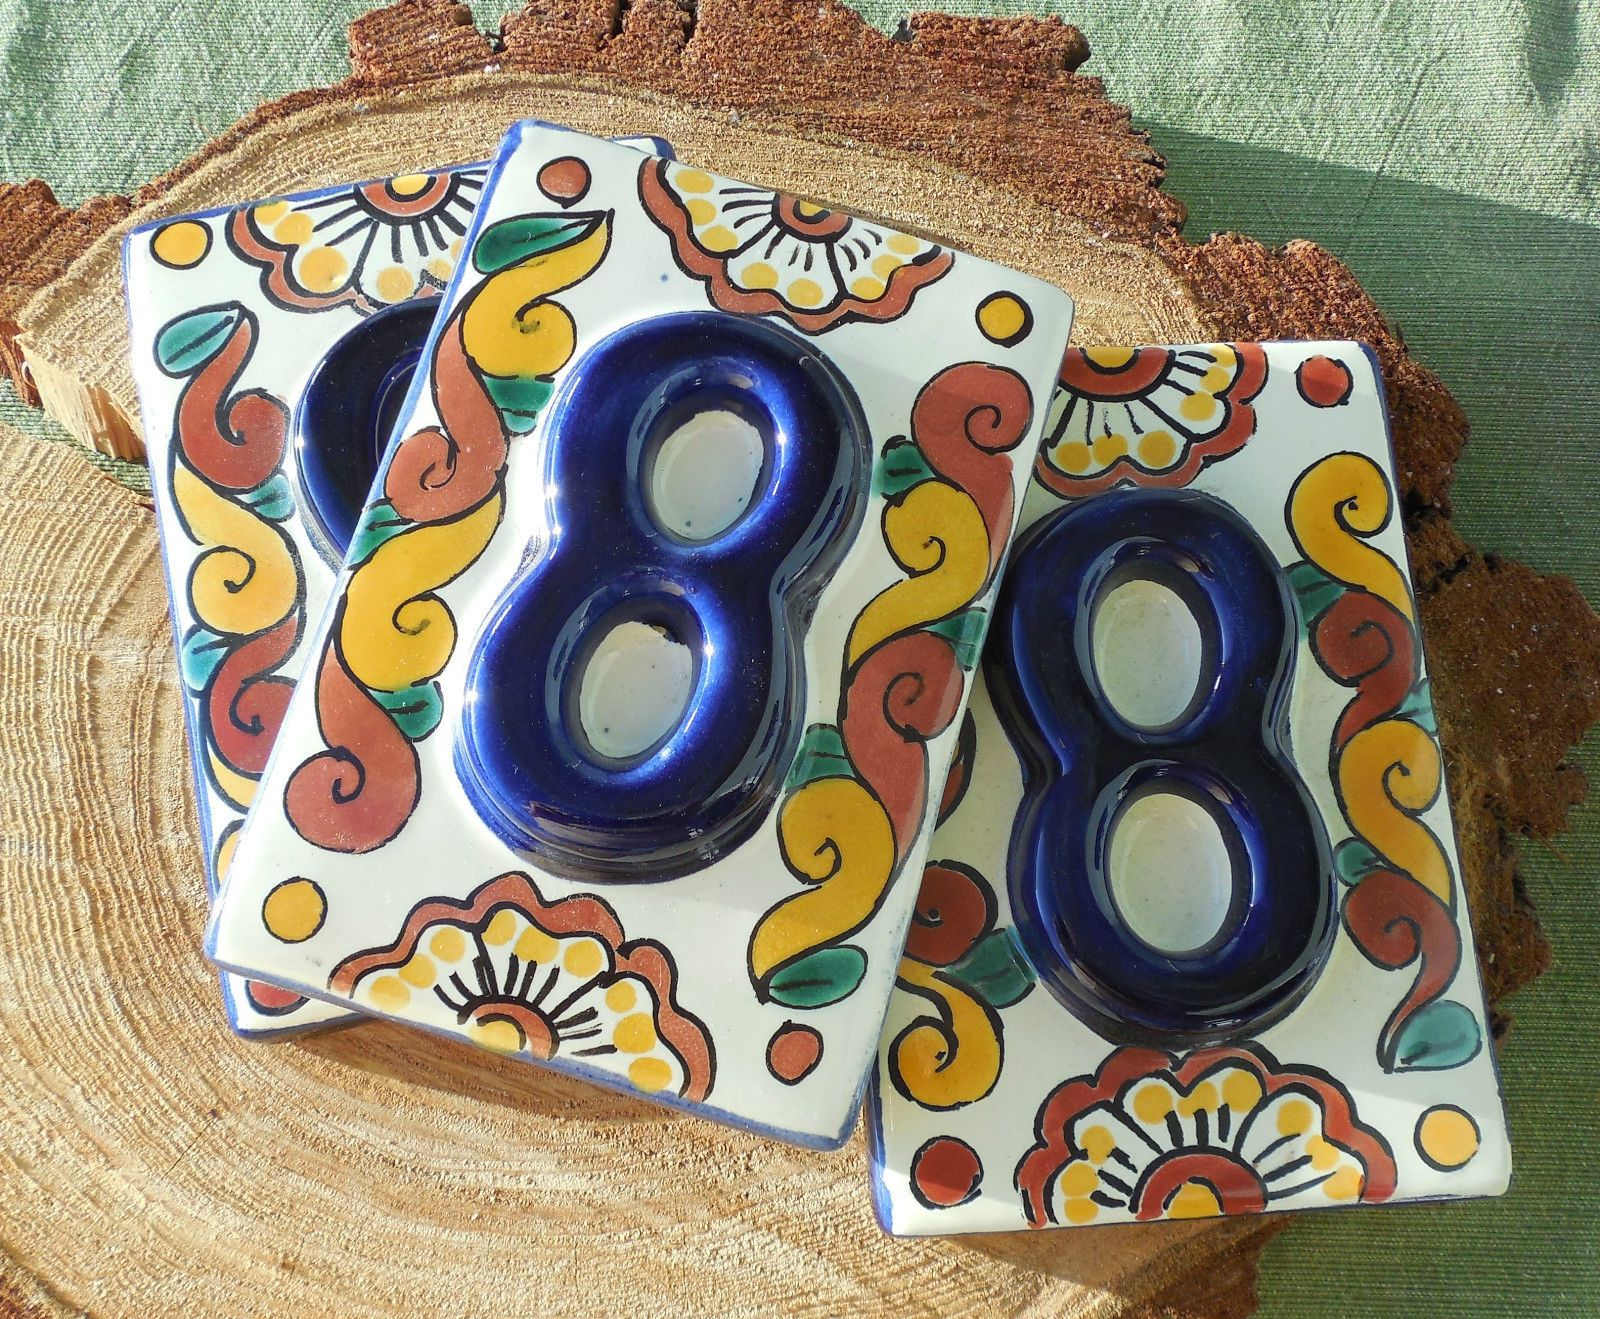 Spanish house number plaques house numbers holder spanish everyone understands about house numbers ceramic while it is a floor tile a ceramic tea strainer kitchen products as wel dailygadgetfo Gallery